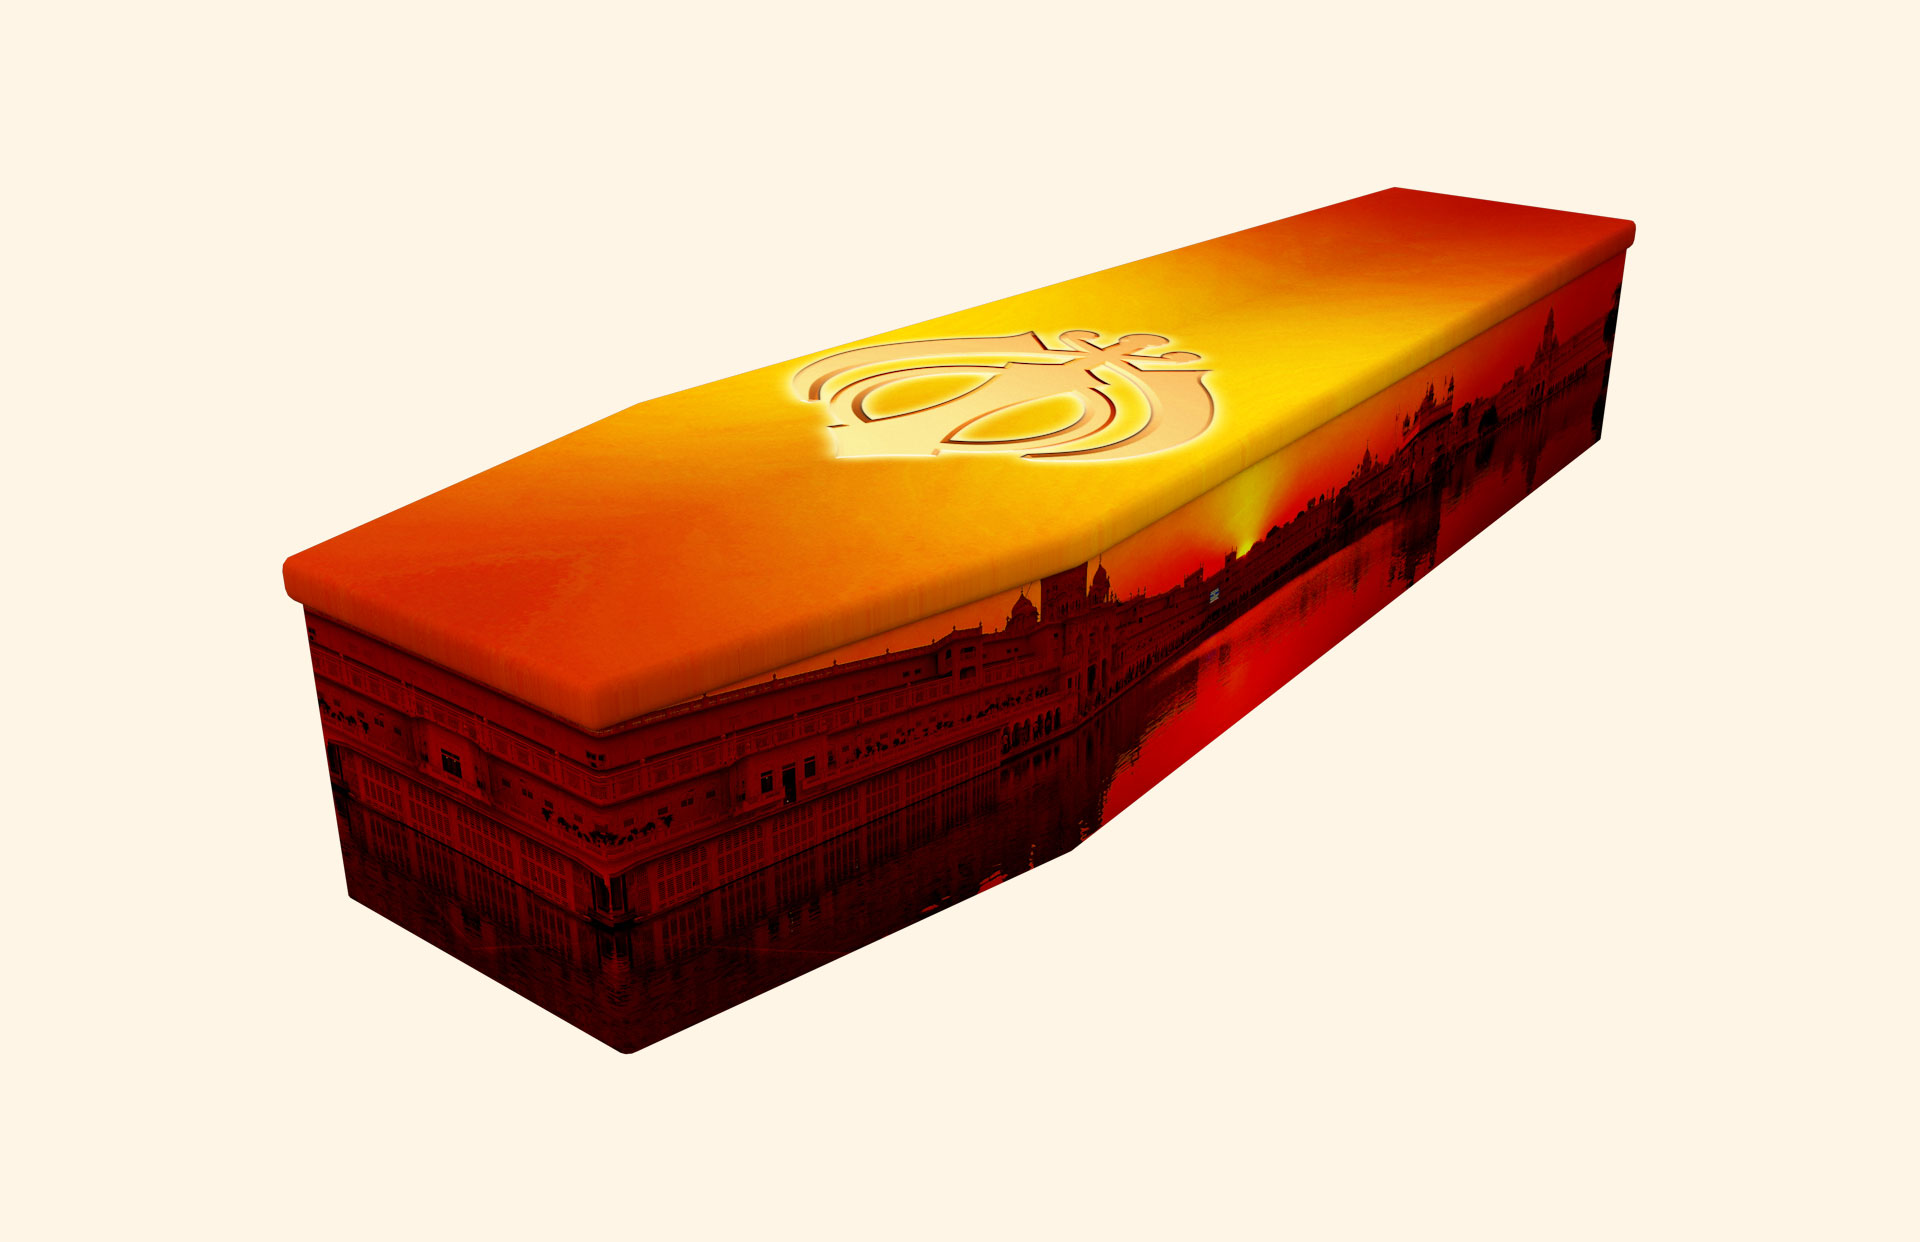 Sikh Sunset Cardboard coffin